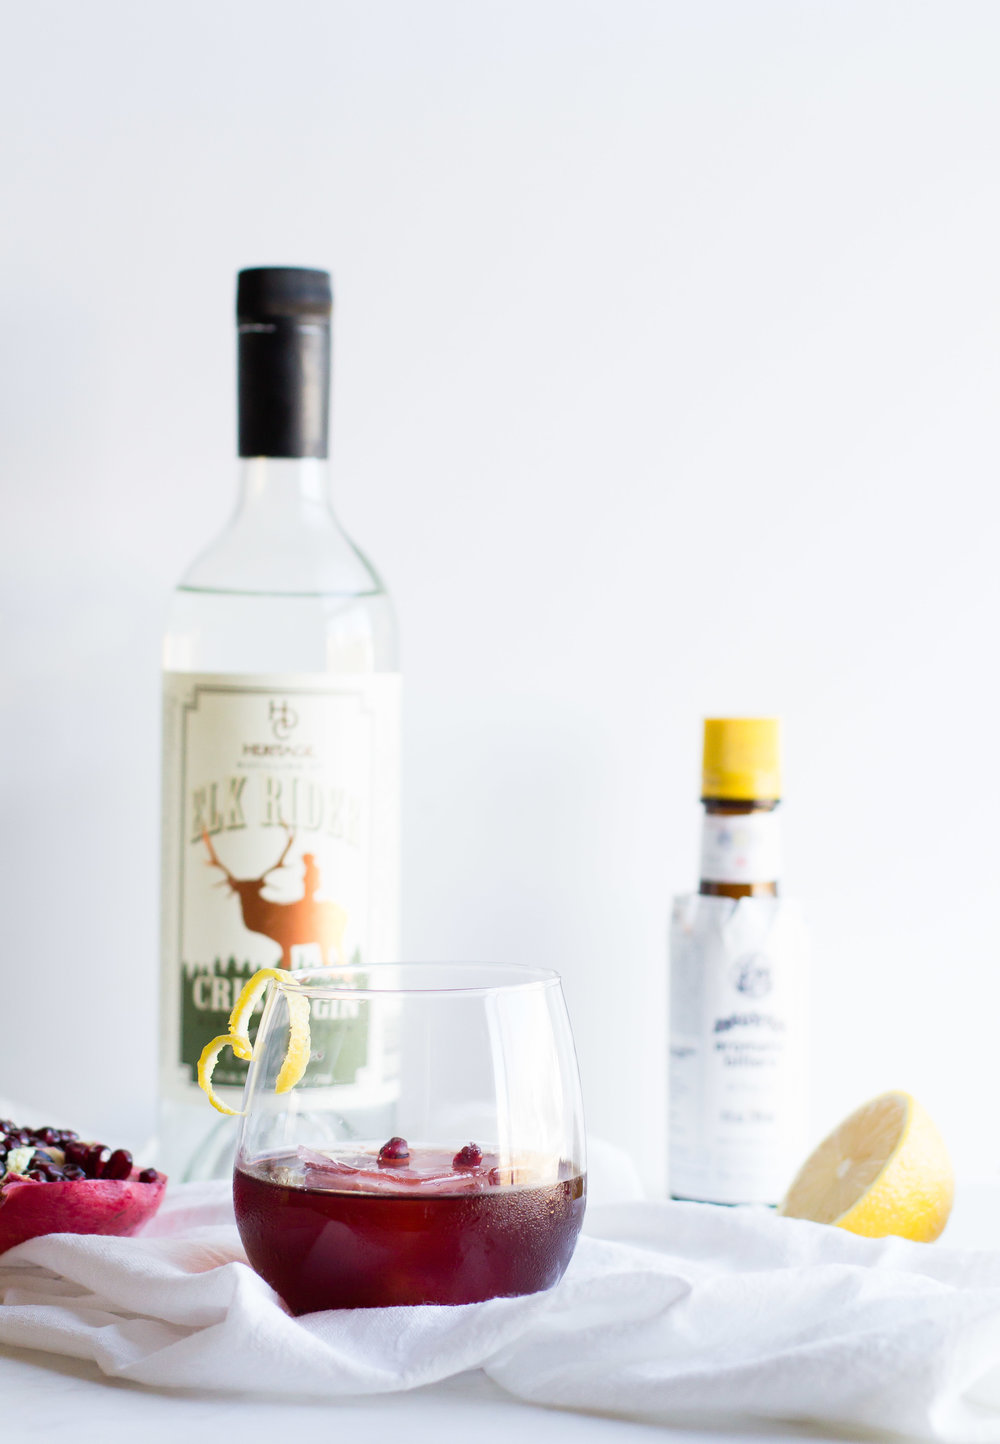 Pomegranate + Gin Cocktail